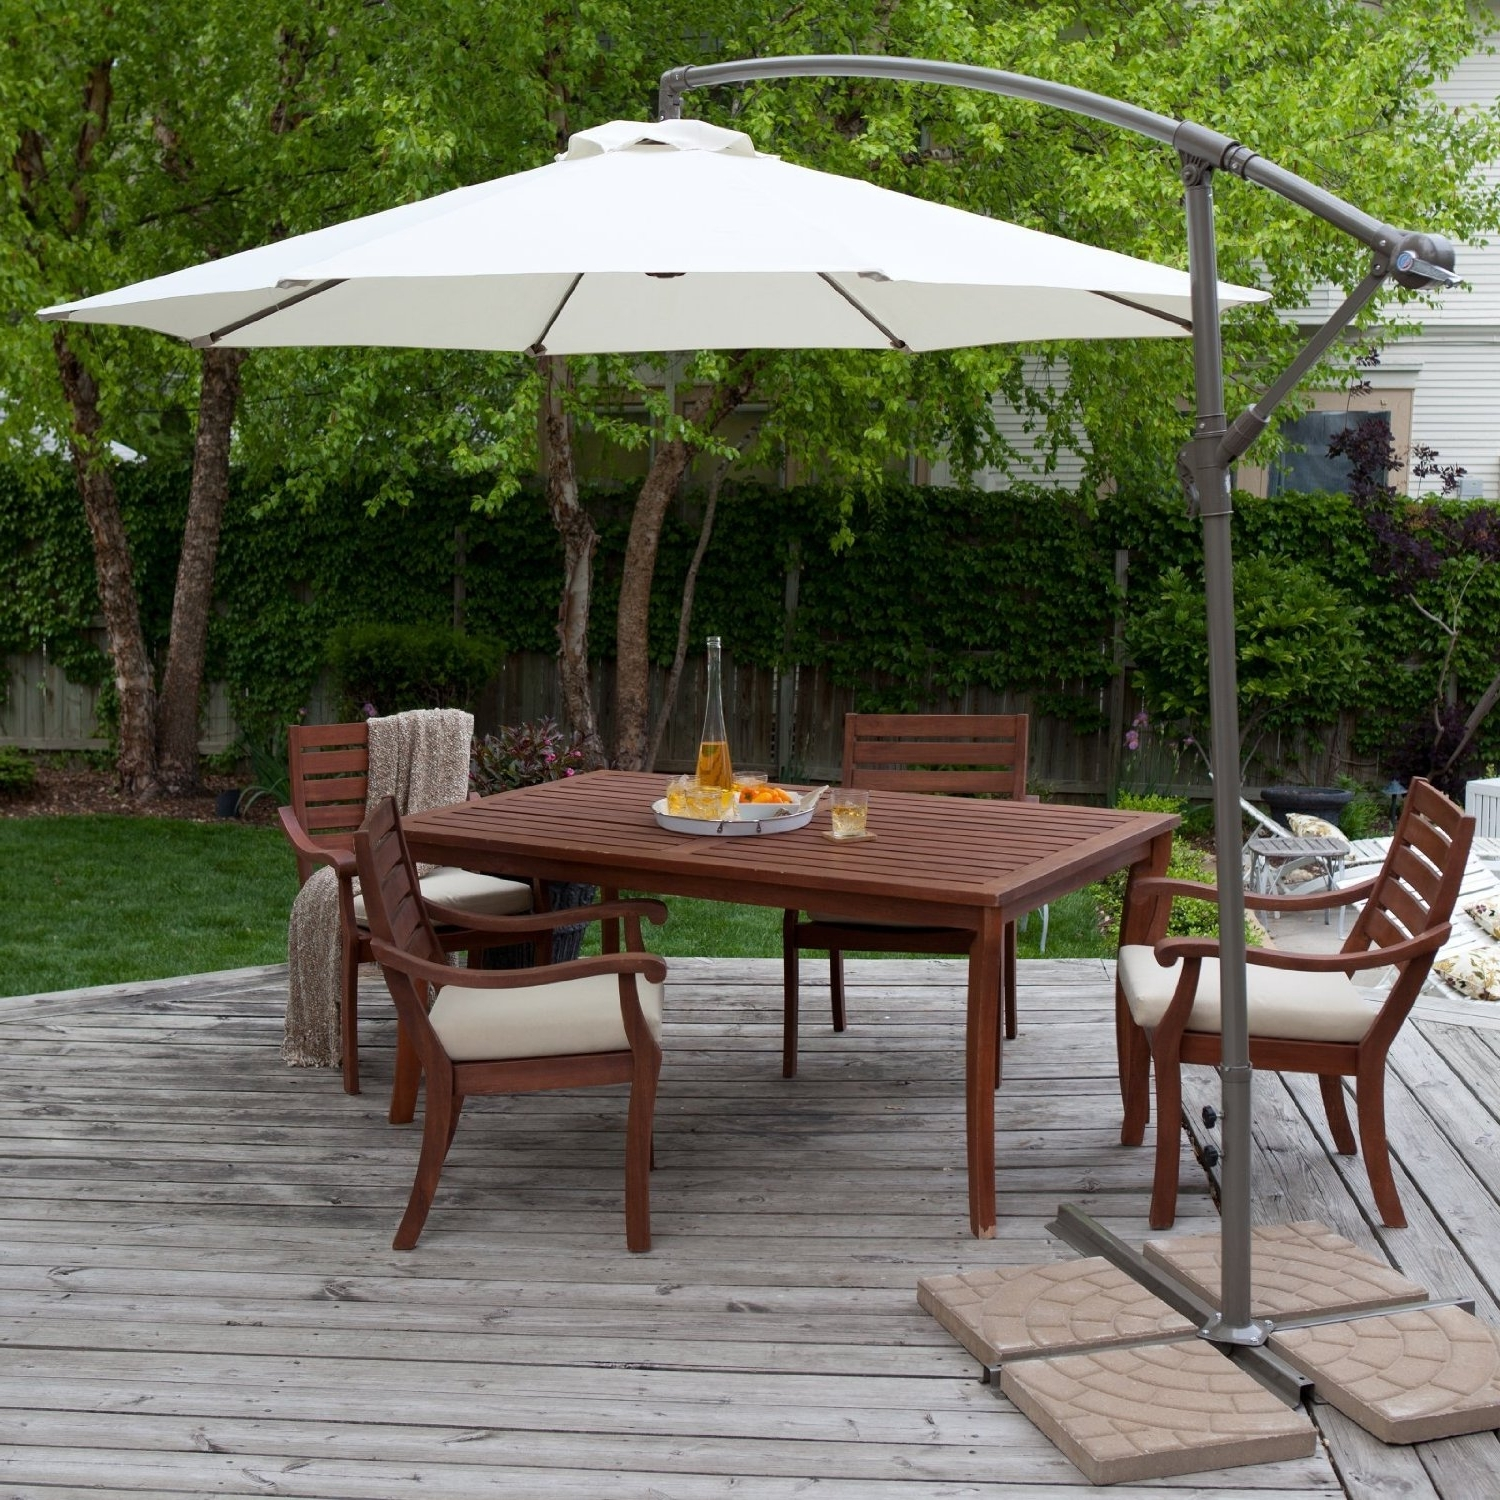 Widely Used Free Standing Umbrellas For Patio In Umbrella For Outdoor Table Amazing Patio Chair With 6 Random (View 15 of 20)